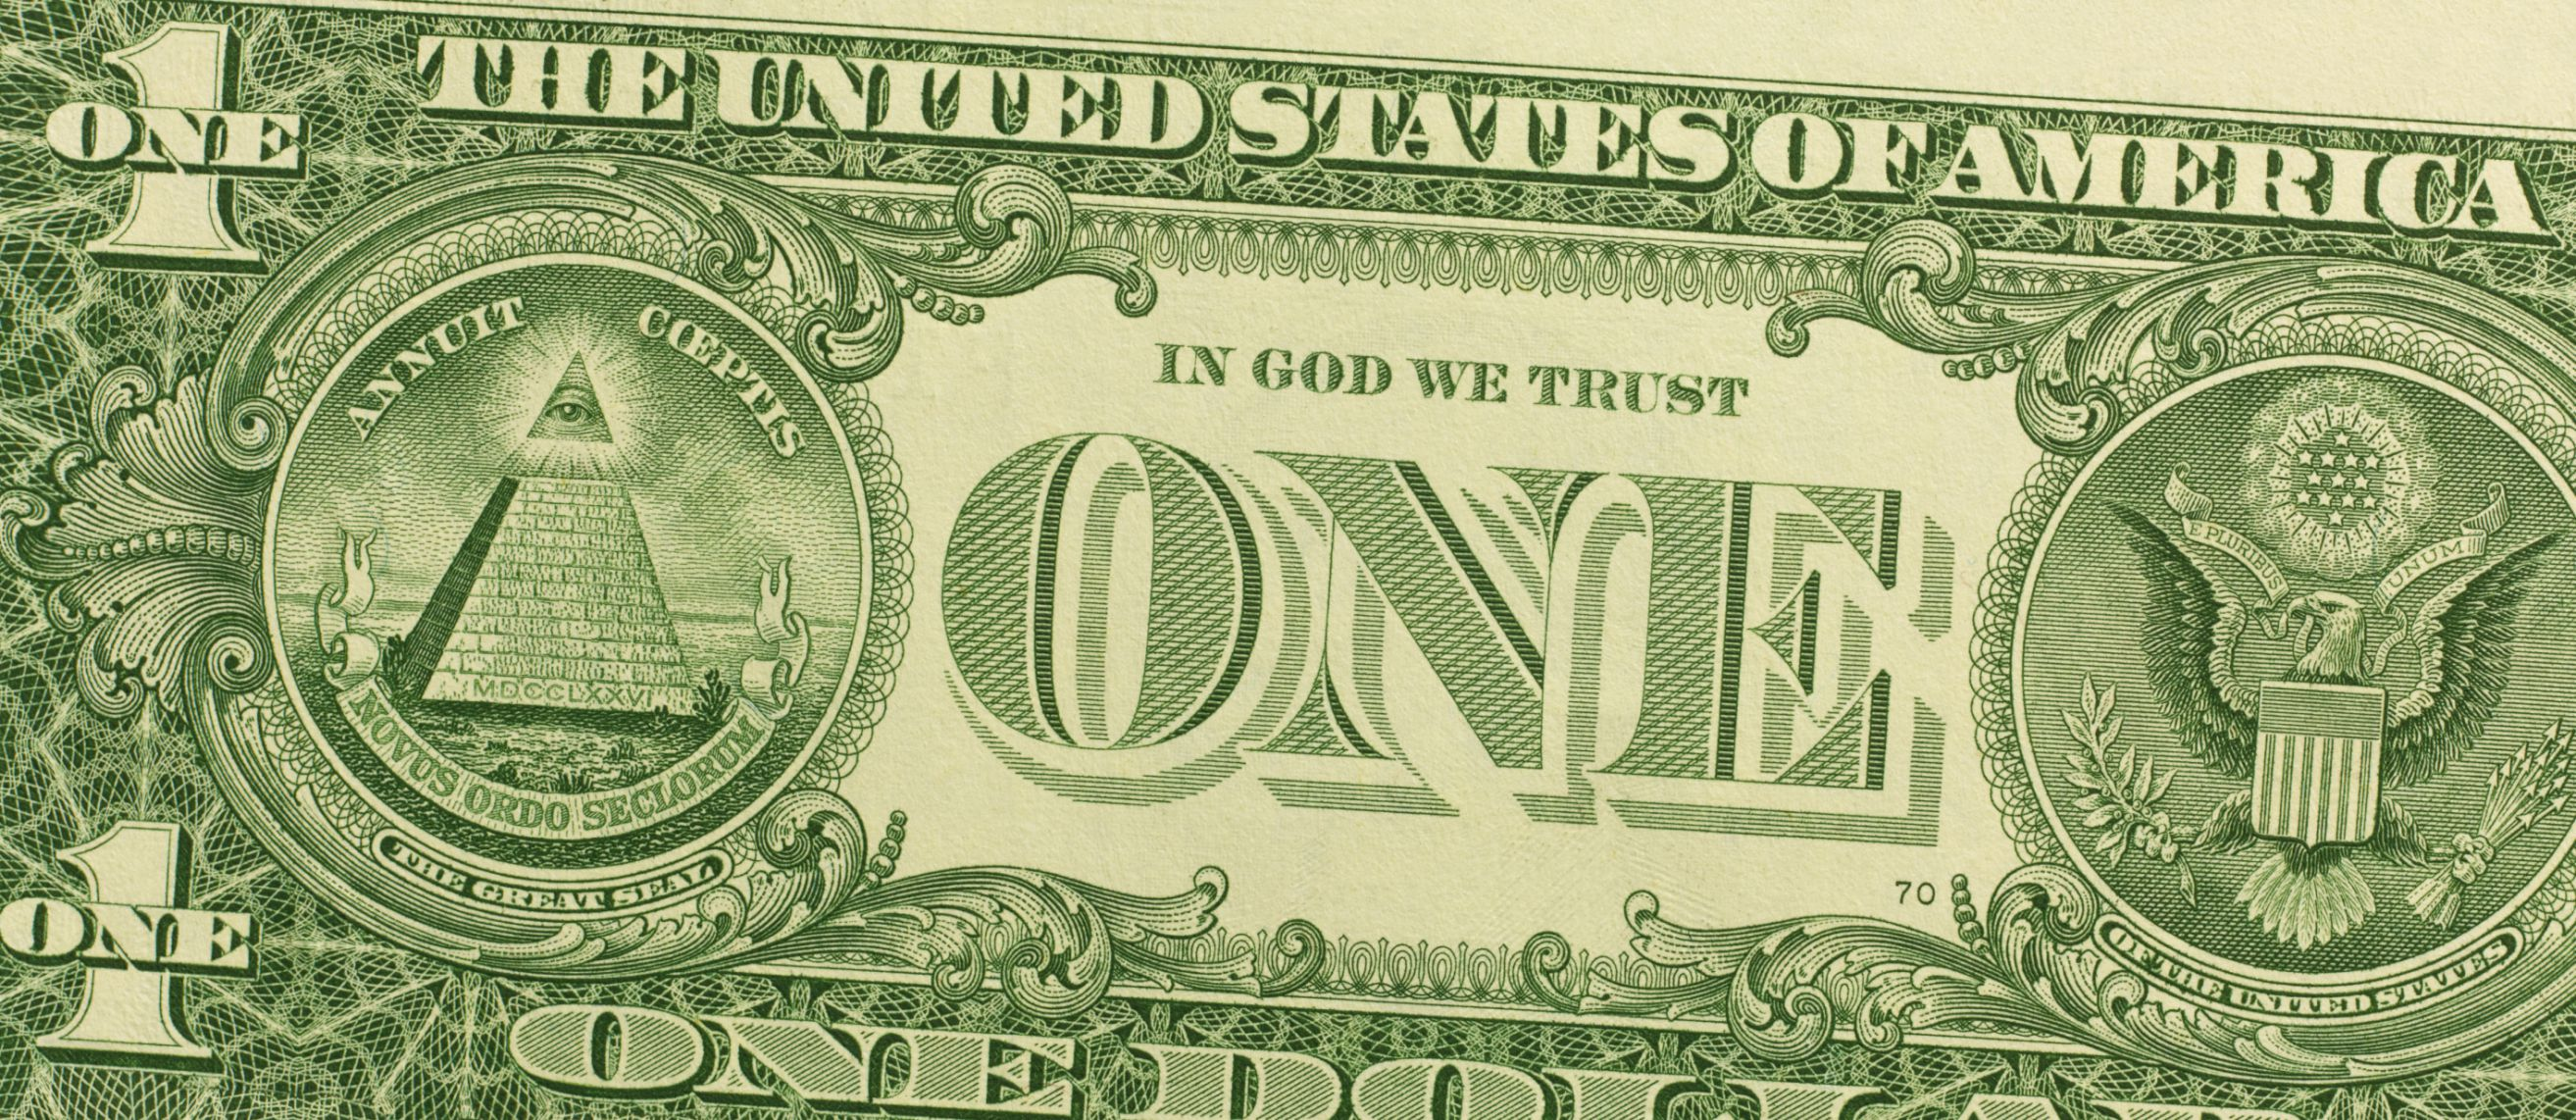 Us Dollar Symbols And Denominations